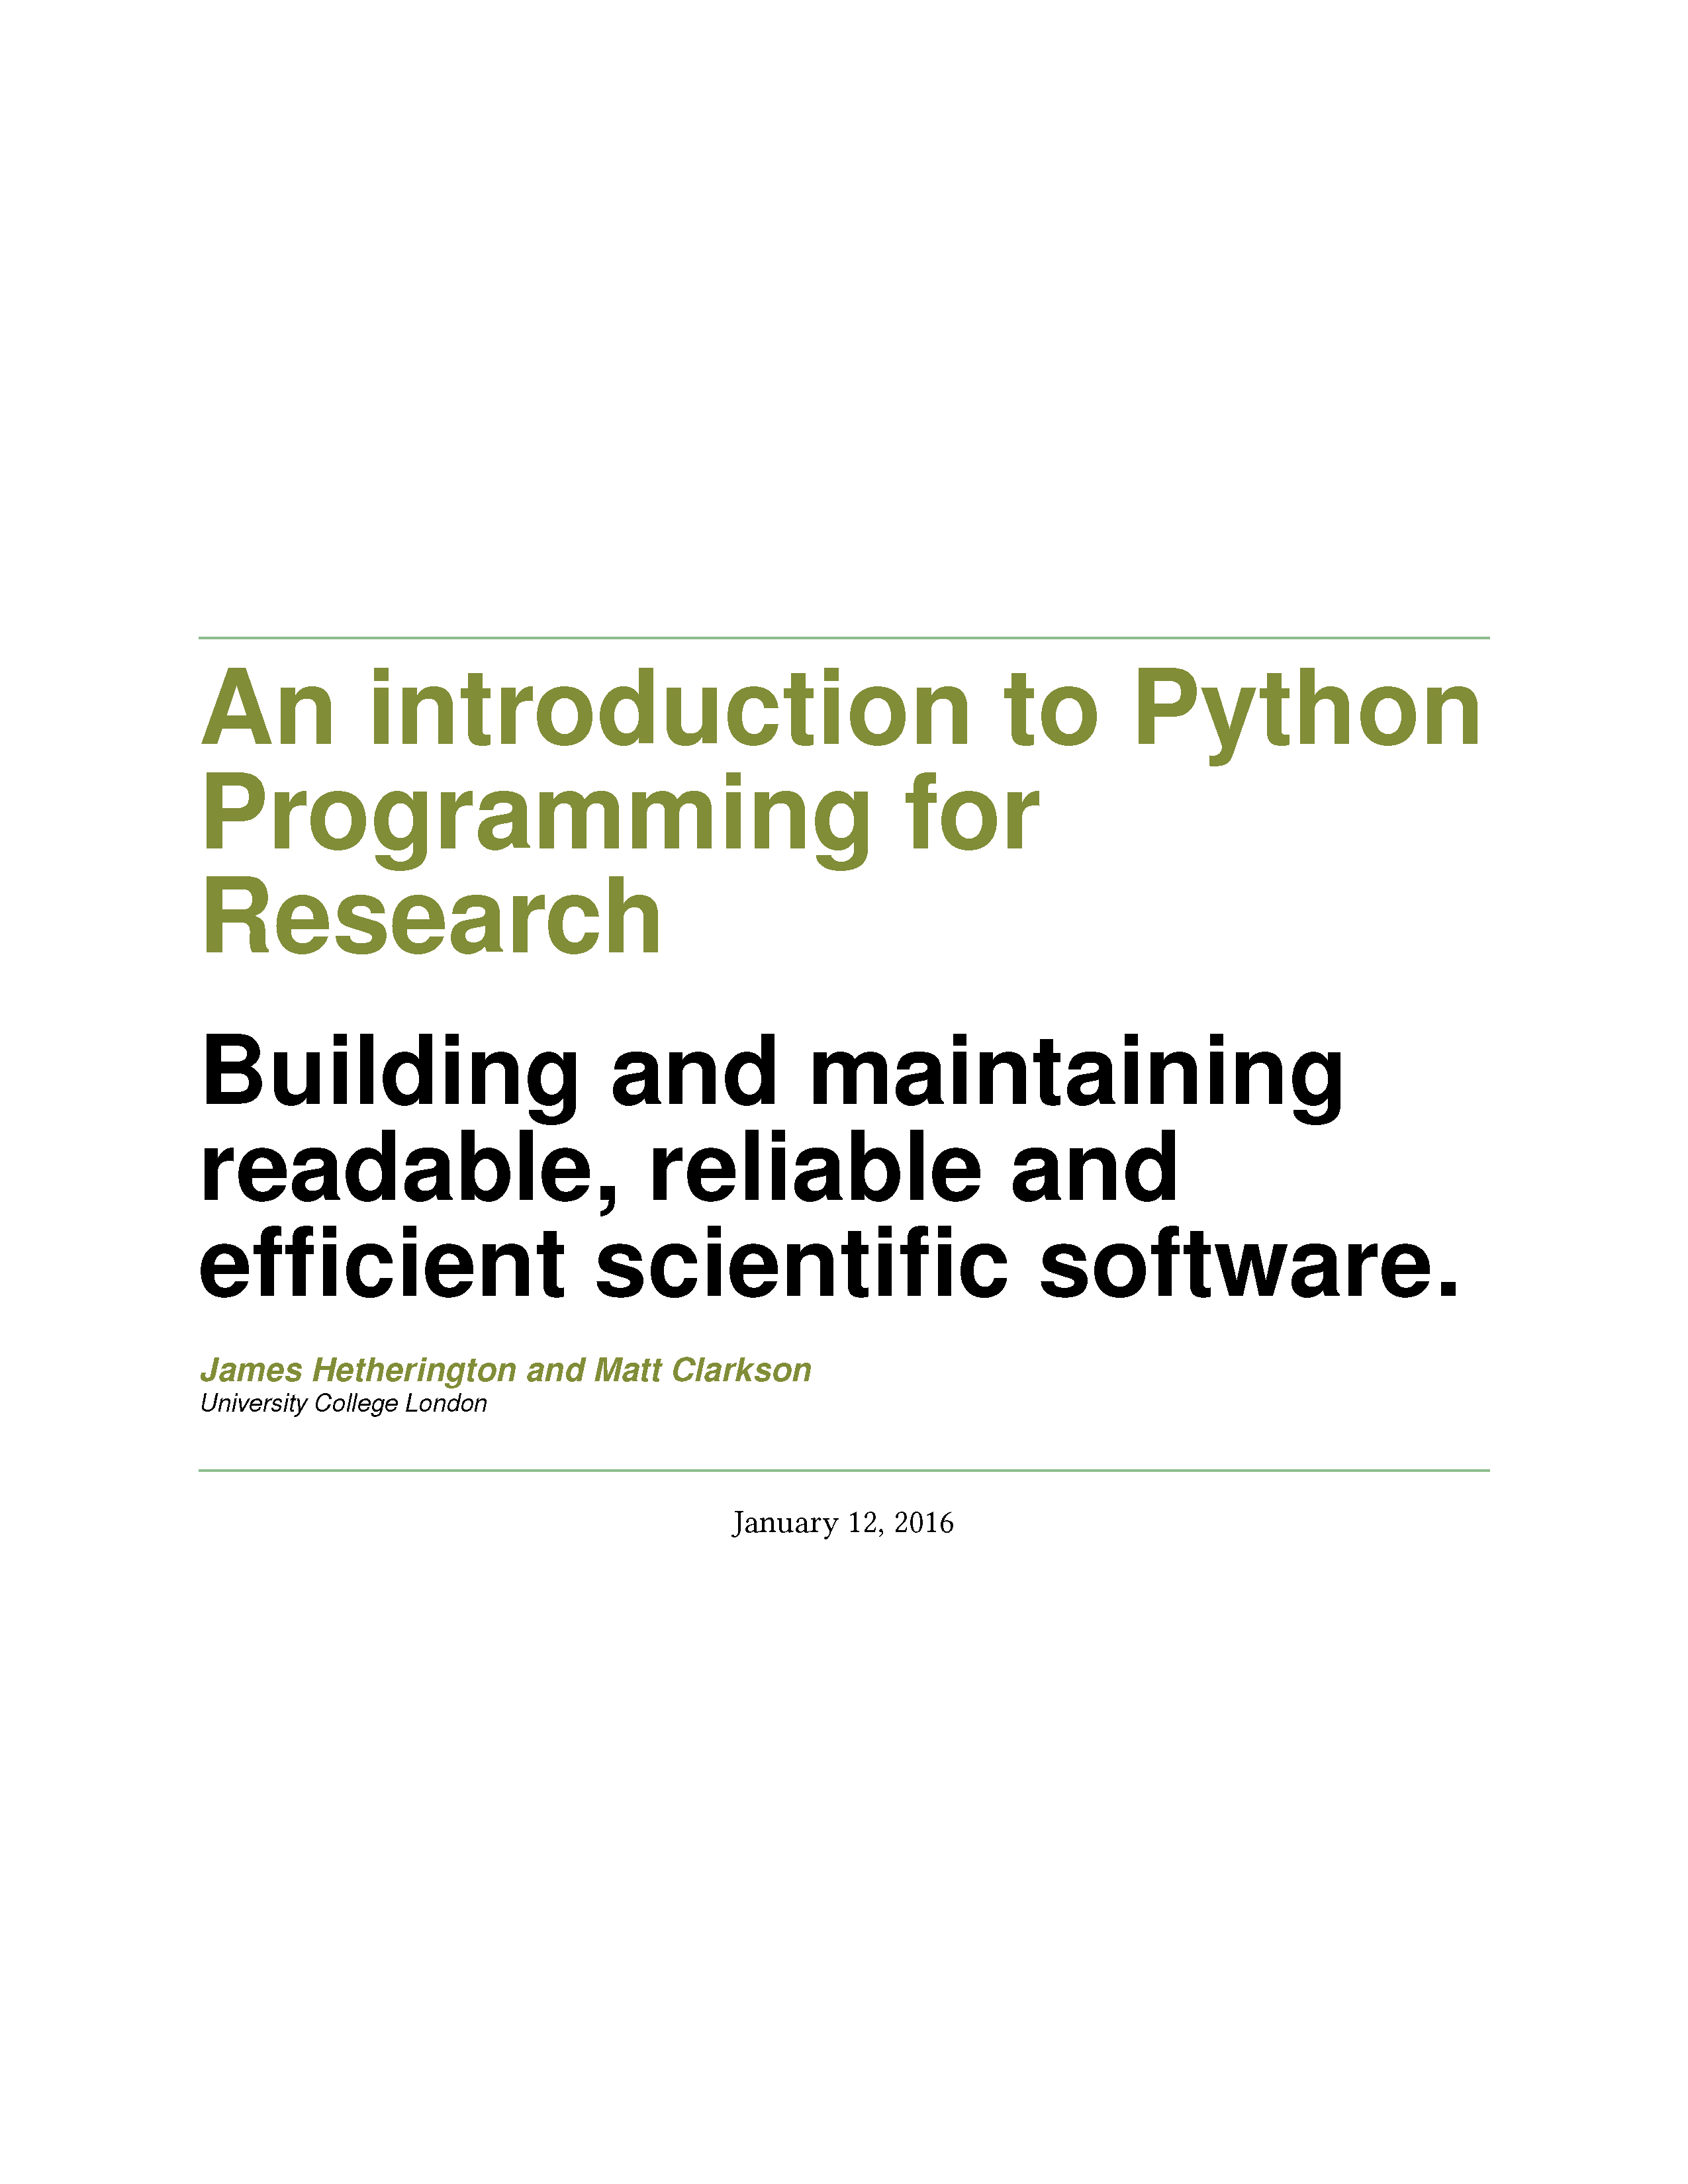 An introduction to Python Programming for Research